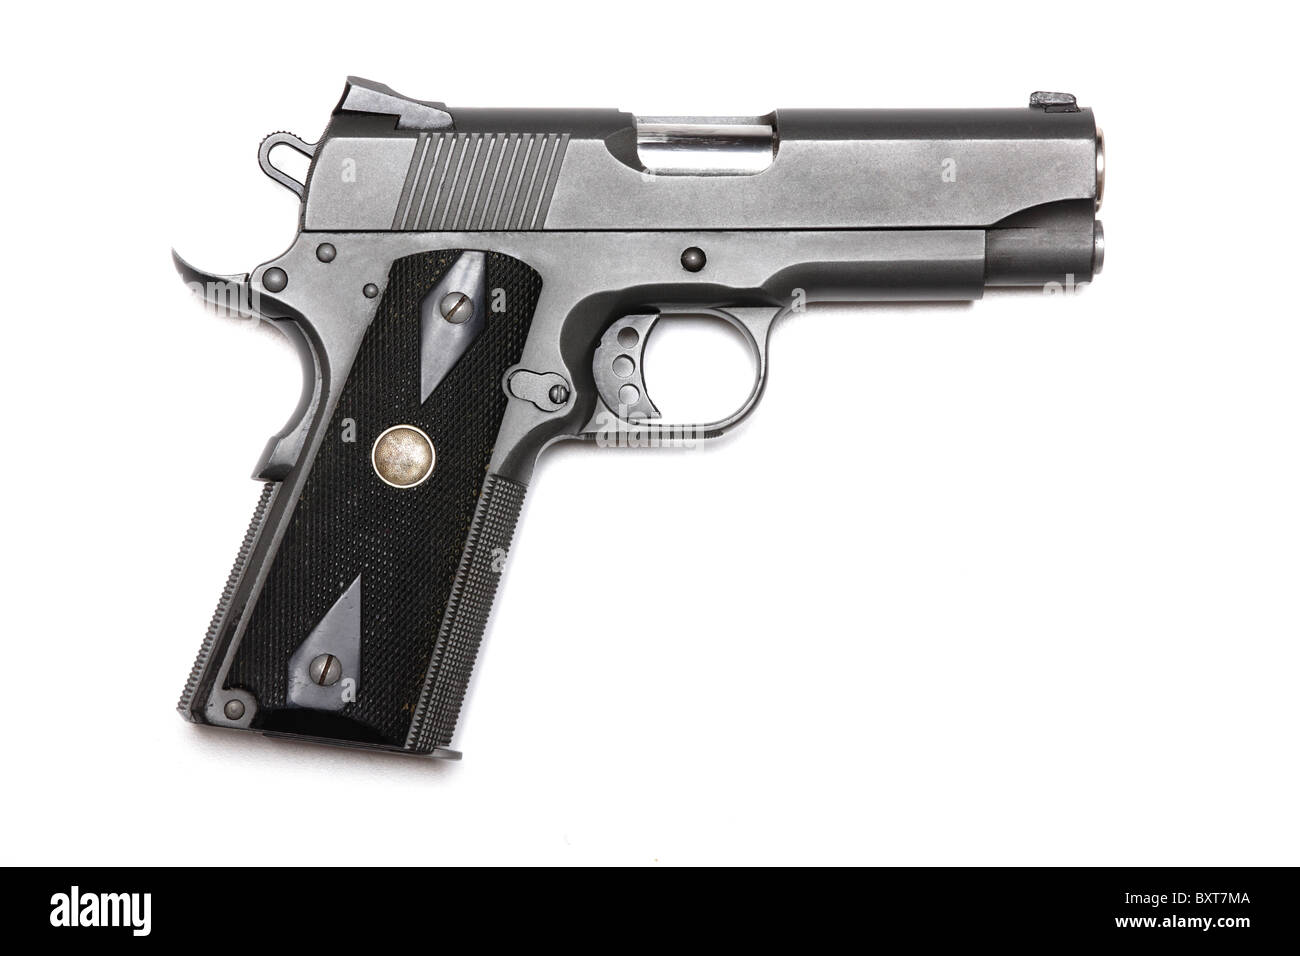 Weapon series. 1911-family handgun with 4.3' barrel. Isolated on a white background. Left side view. Studio - Stock Image